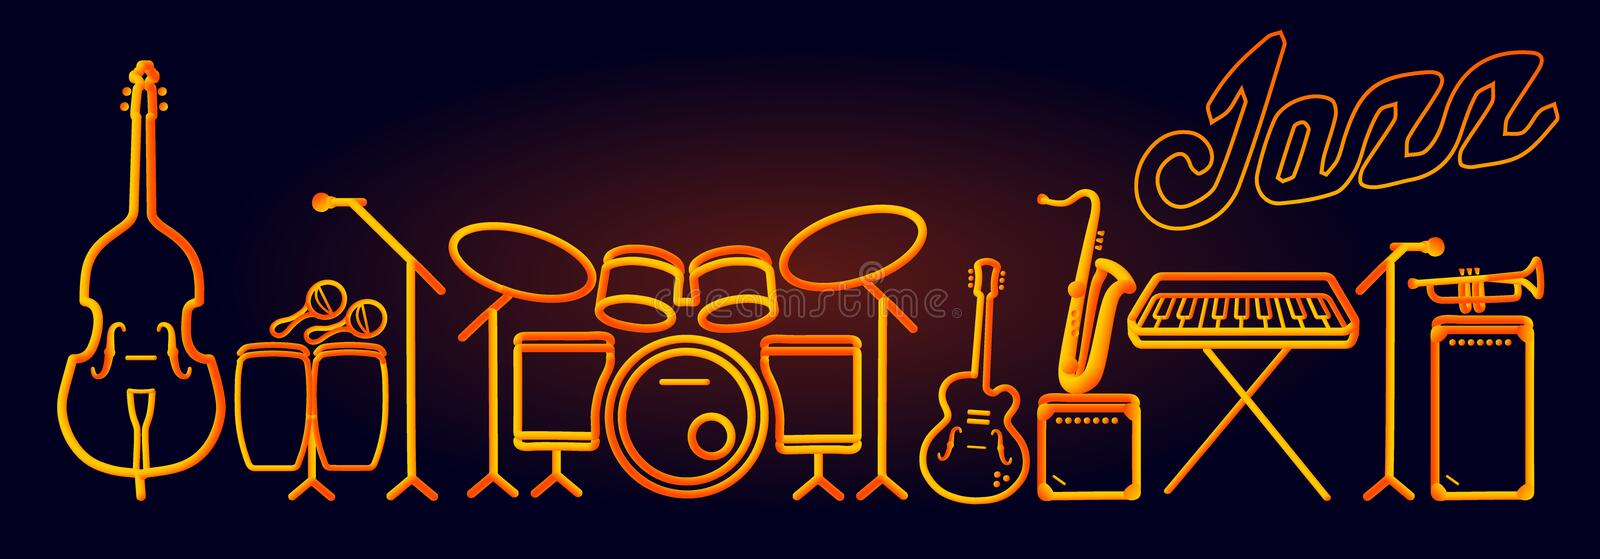 Wind brass instruments neon tubed silhouette abstract design concept performance set vector illustration